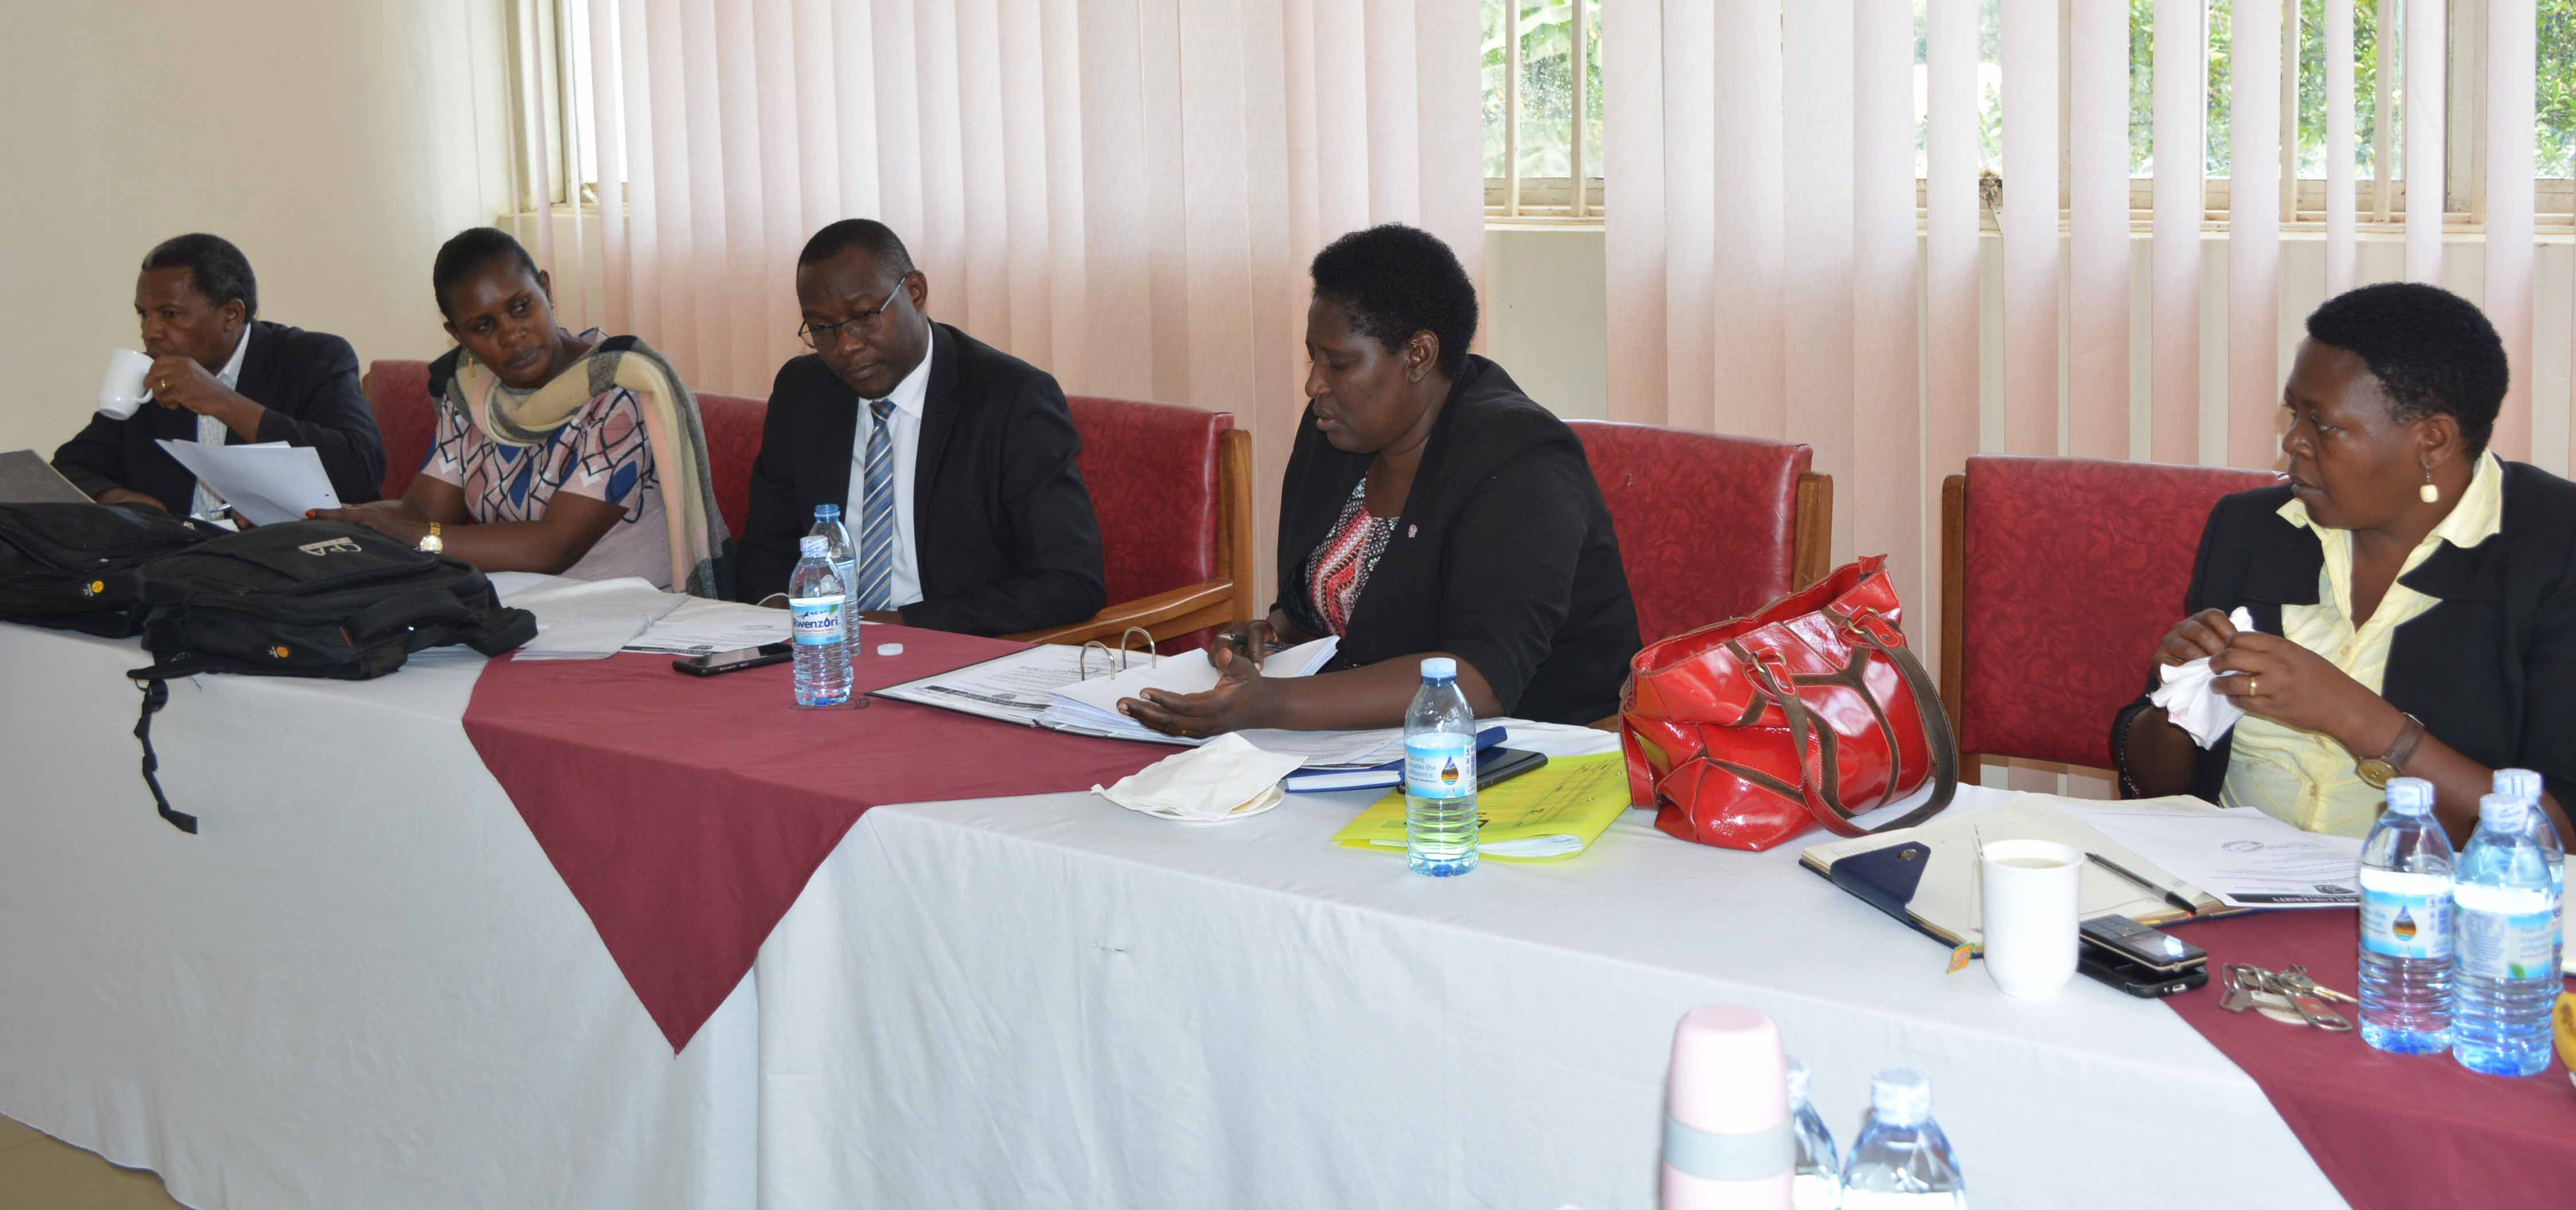 Ministry of Education and Sports officials in a meeting with the University Top Management team